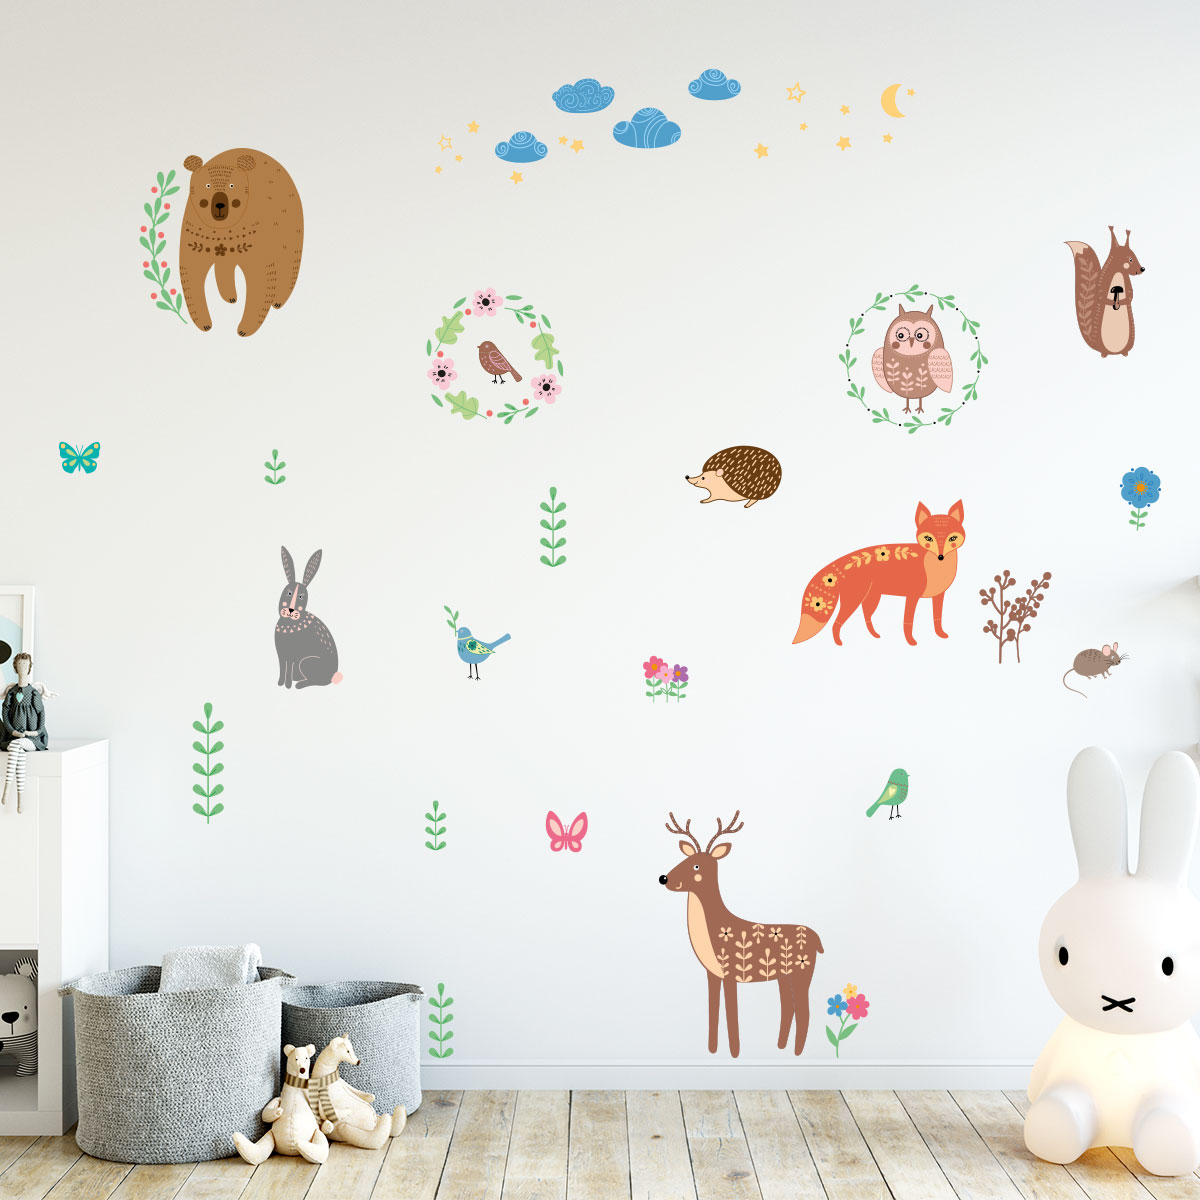 sticker animaux scandinaves de la for t stickers animaux oiseaux ambiance sticker. Black Bedroom Furniture Sets. Home Design Ideas